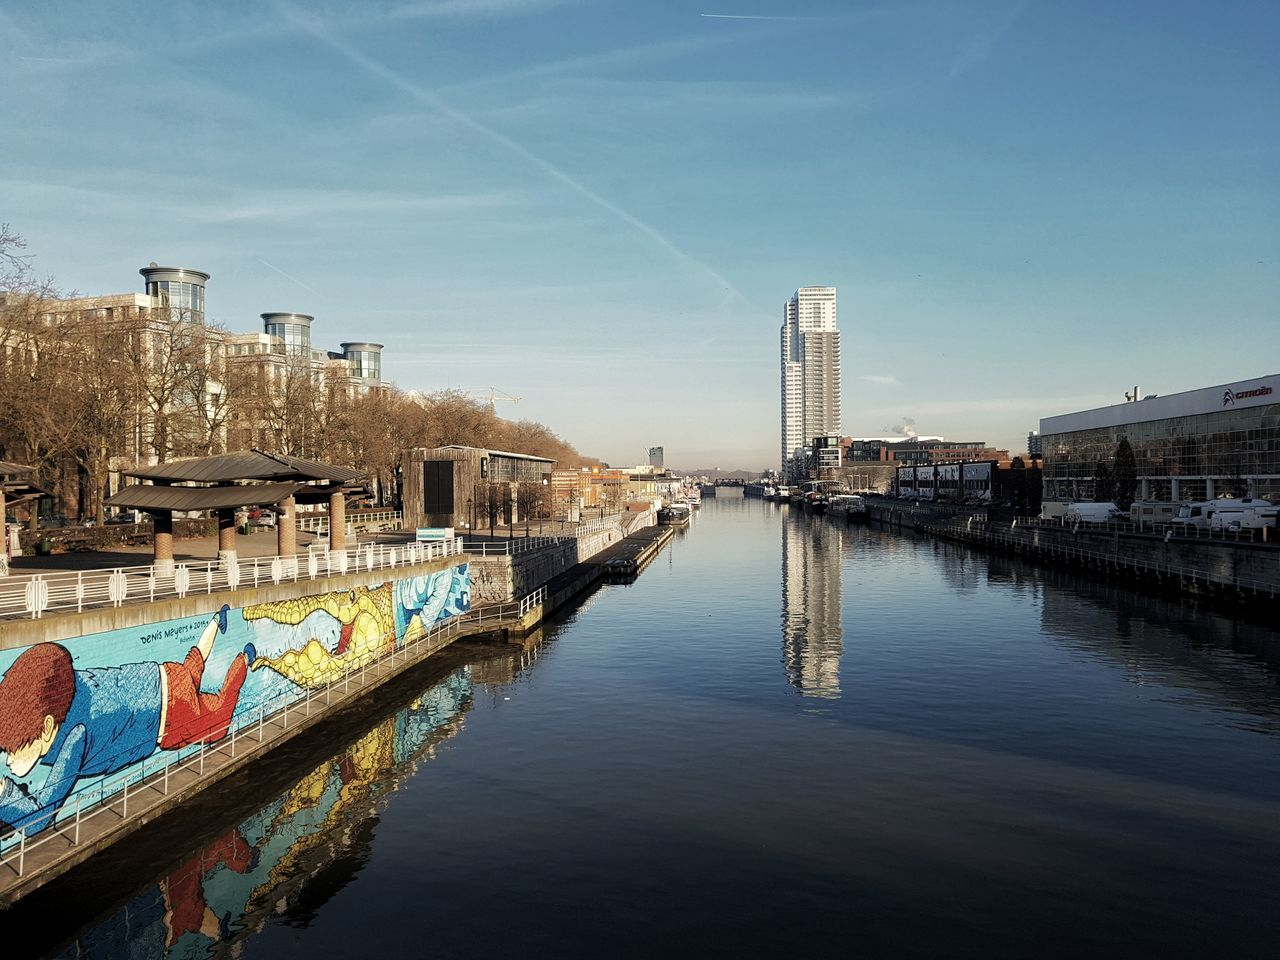 Canal Molenbeek Reflection Water Skyscraper Travel Sky Travel Destinations City Architecture Business Finance And Industry Outdoors Tranquility Building Exterior Cityscape Urban Skyline No People Day Cloud - Sky Bridge - Man Made Structure Sea Nature